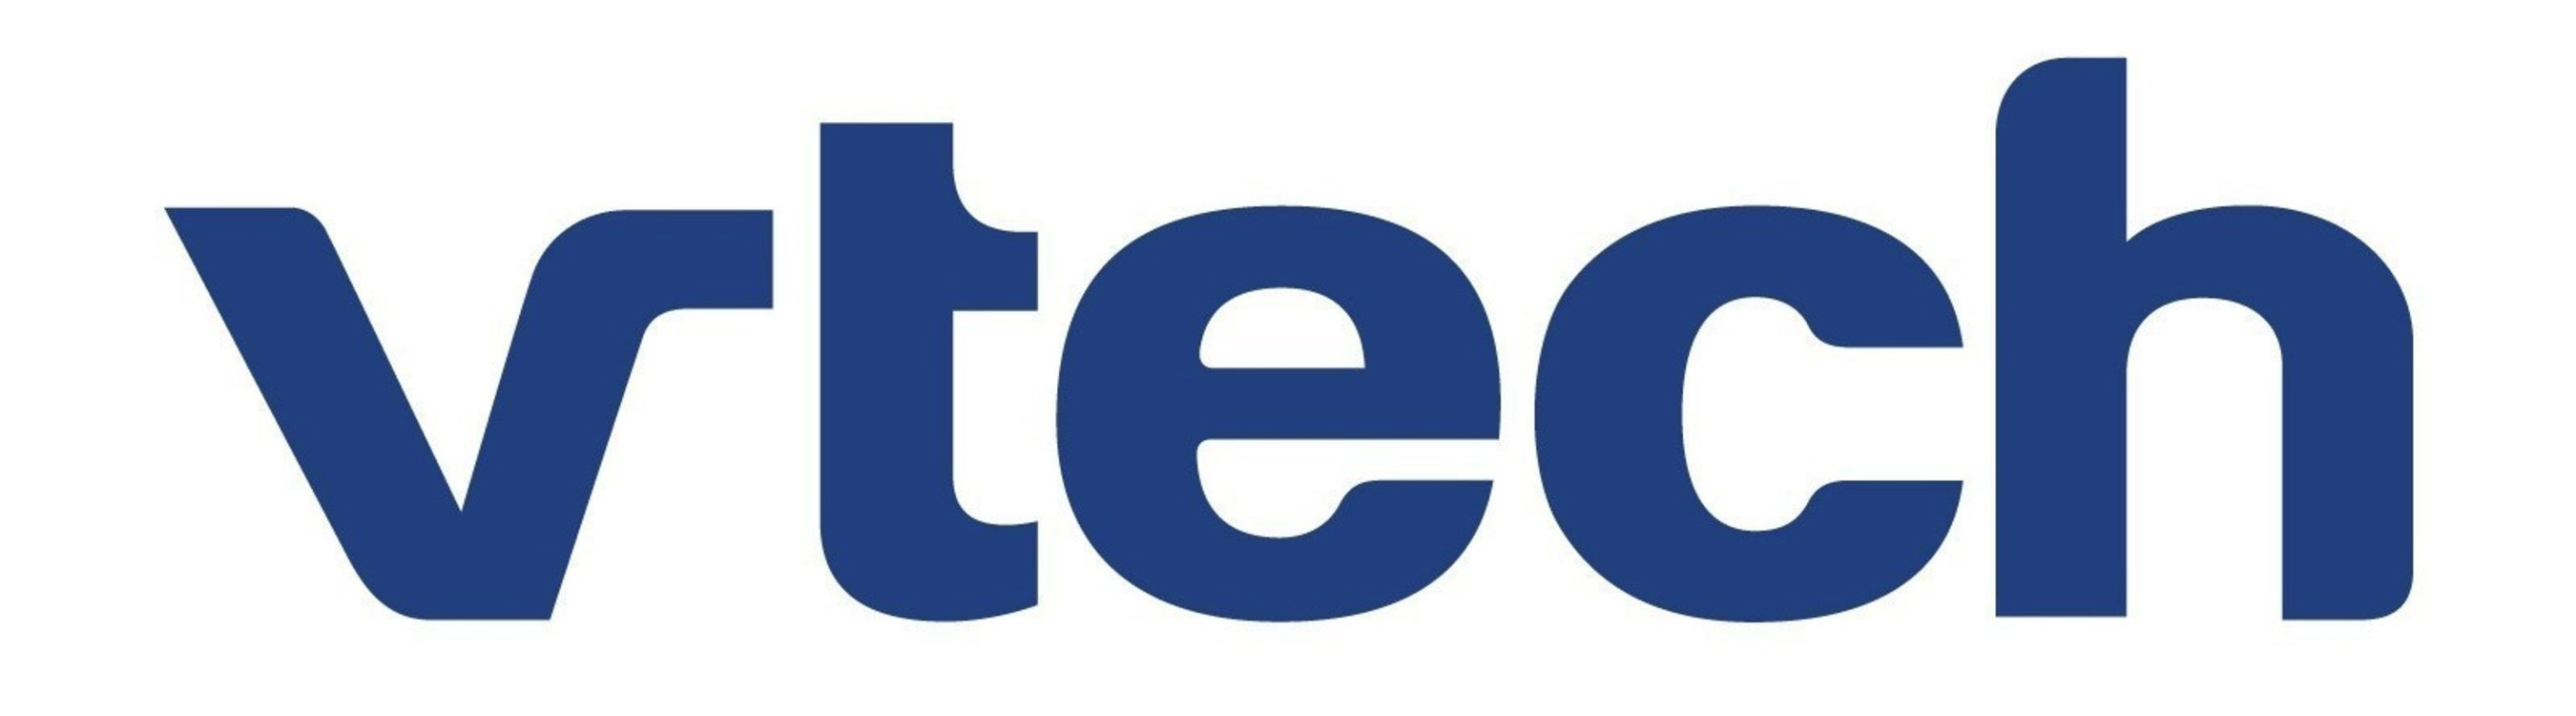 VTech Announces FY2019 Annual Results